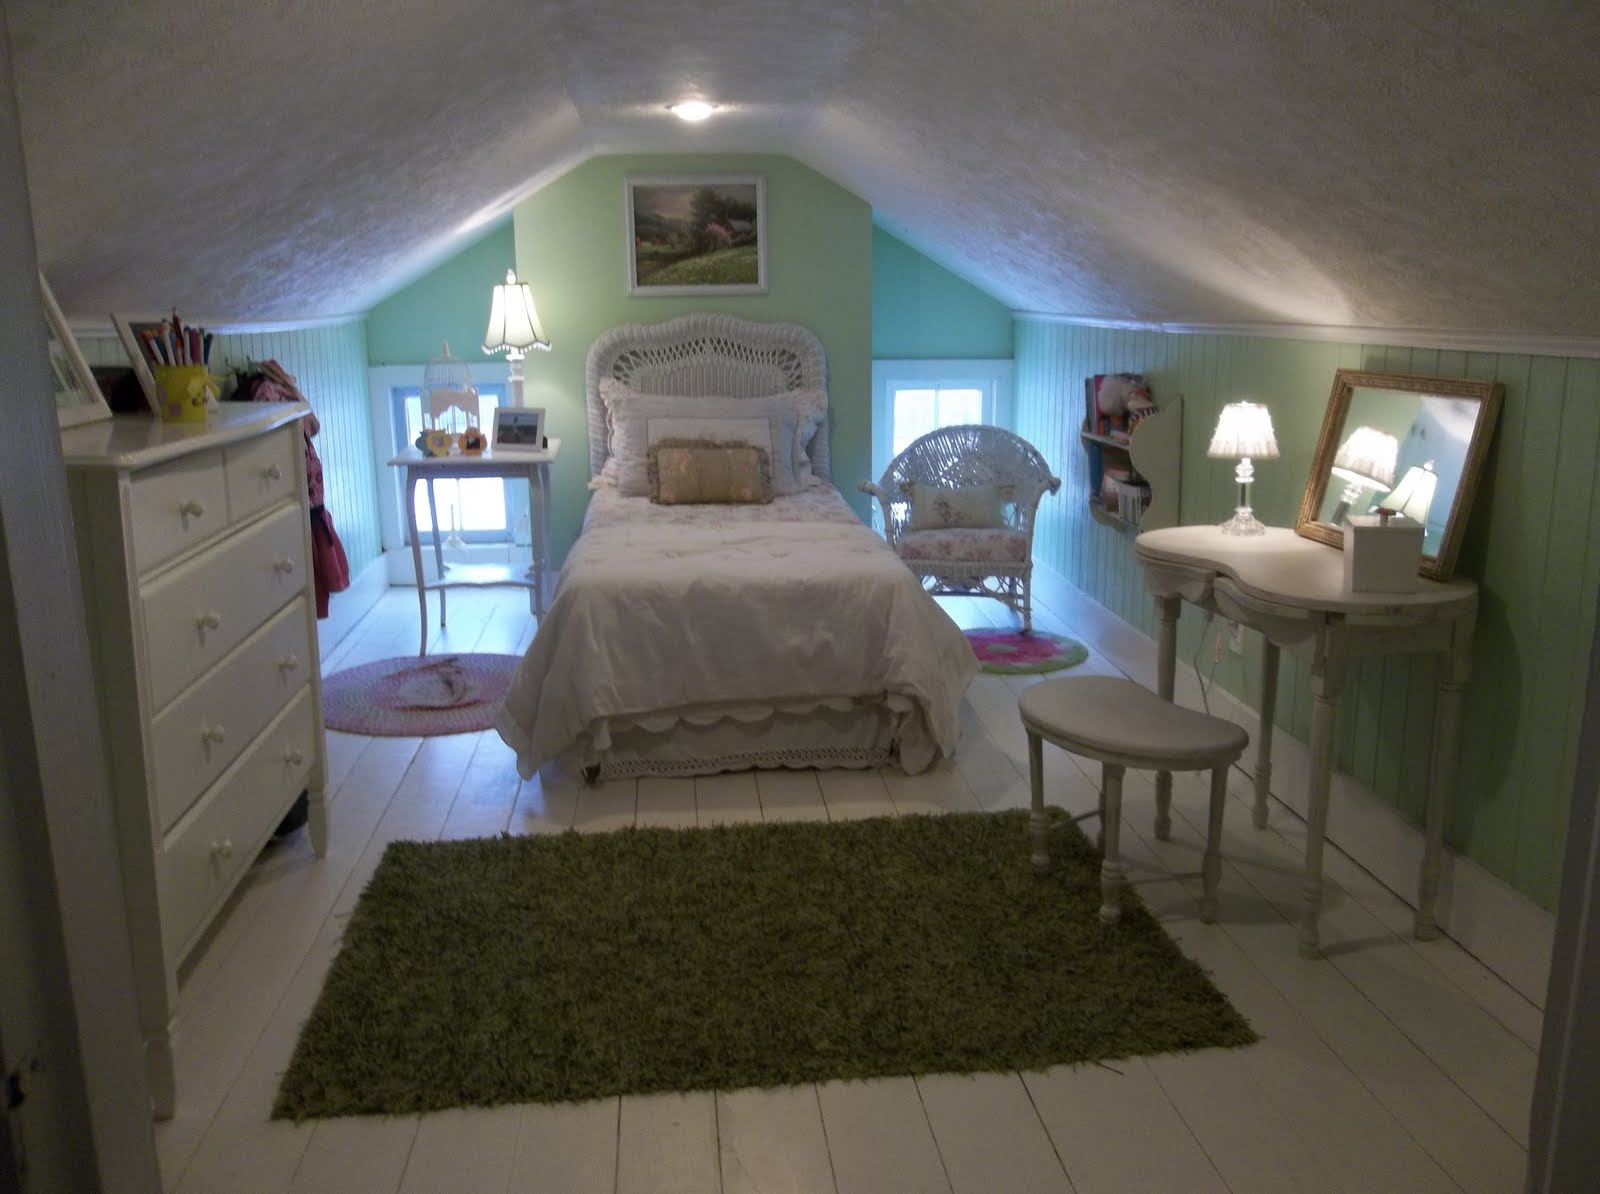 The Fanciful Farmhouse The Attic Room